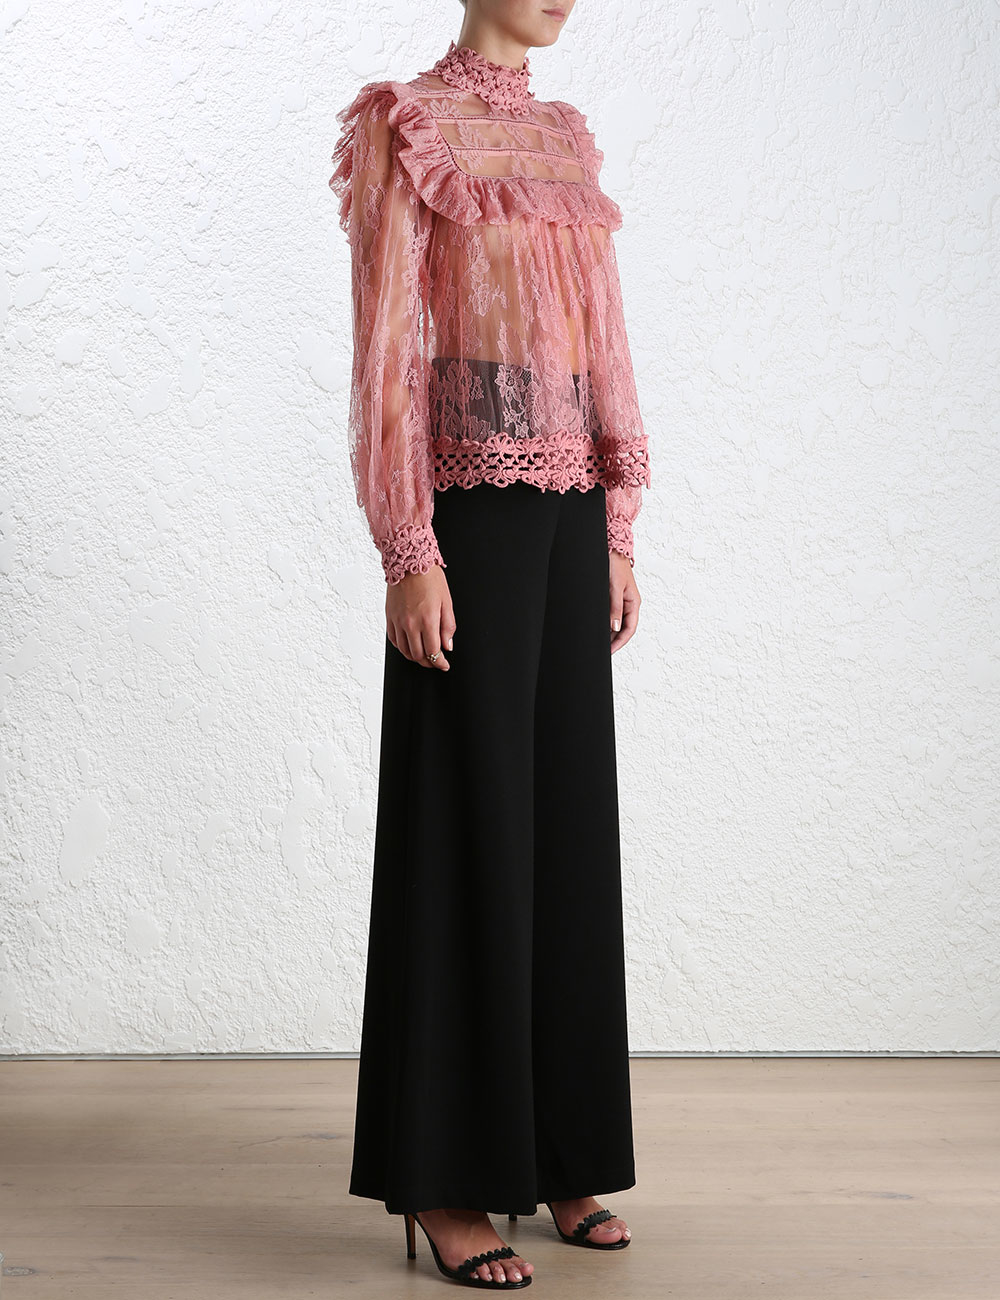 797b1628a3a74b Zimmermann Mischief Peony Lace Blouse in Pink - Lyst